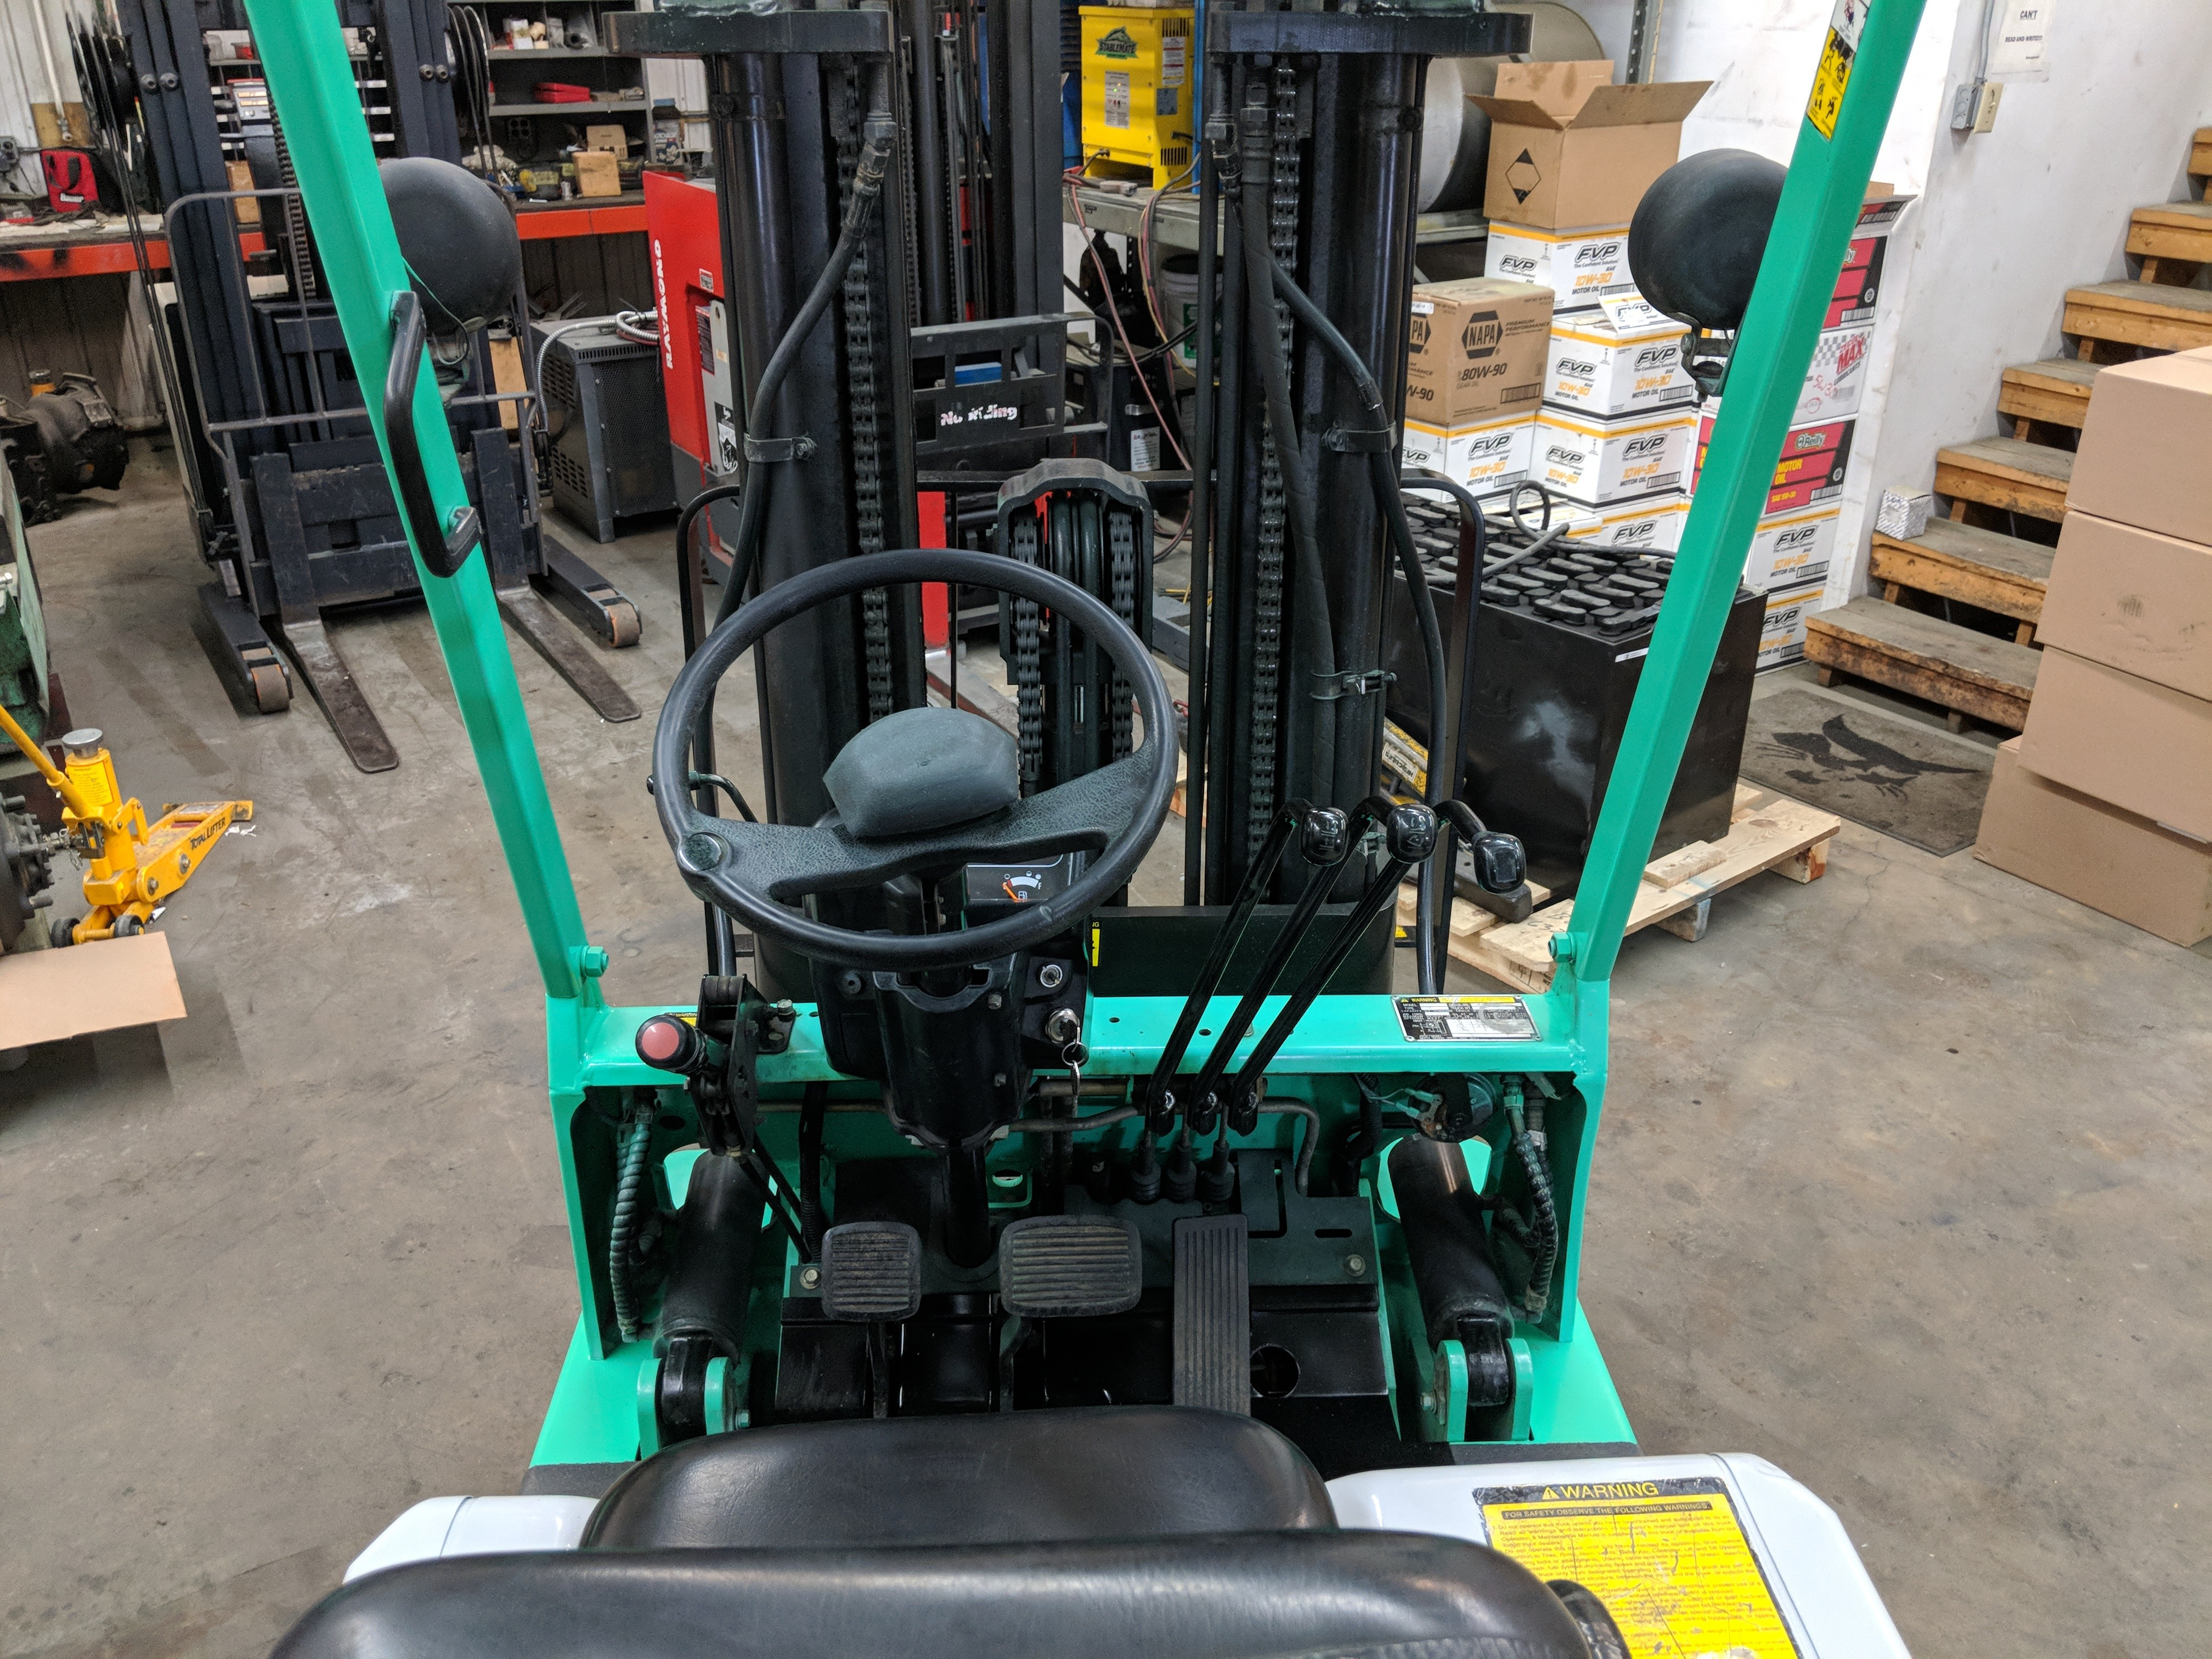 forklift tire pneumatic products mitsubishi capacity forklifts lbs